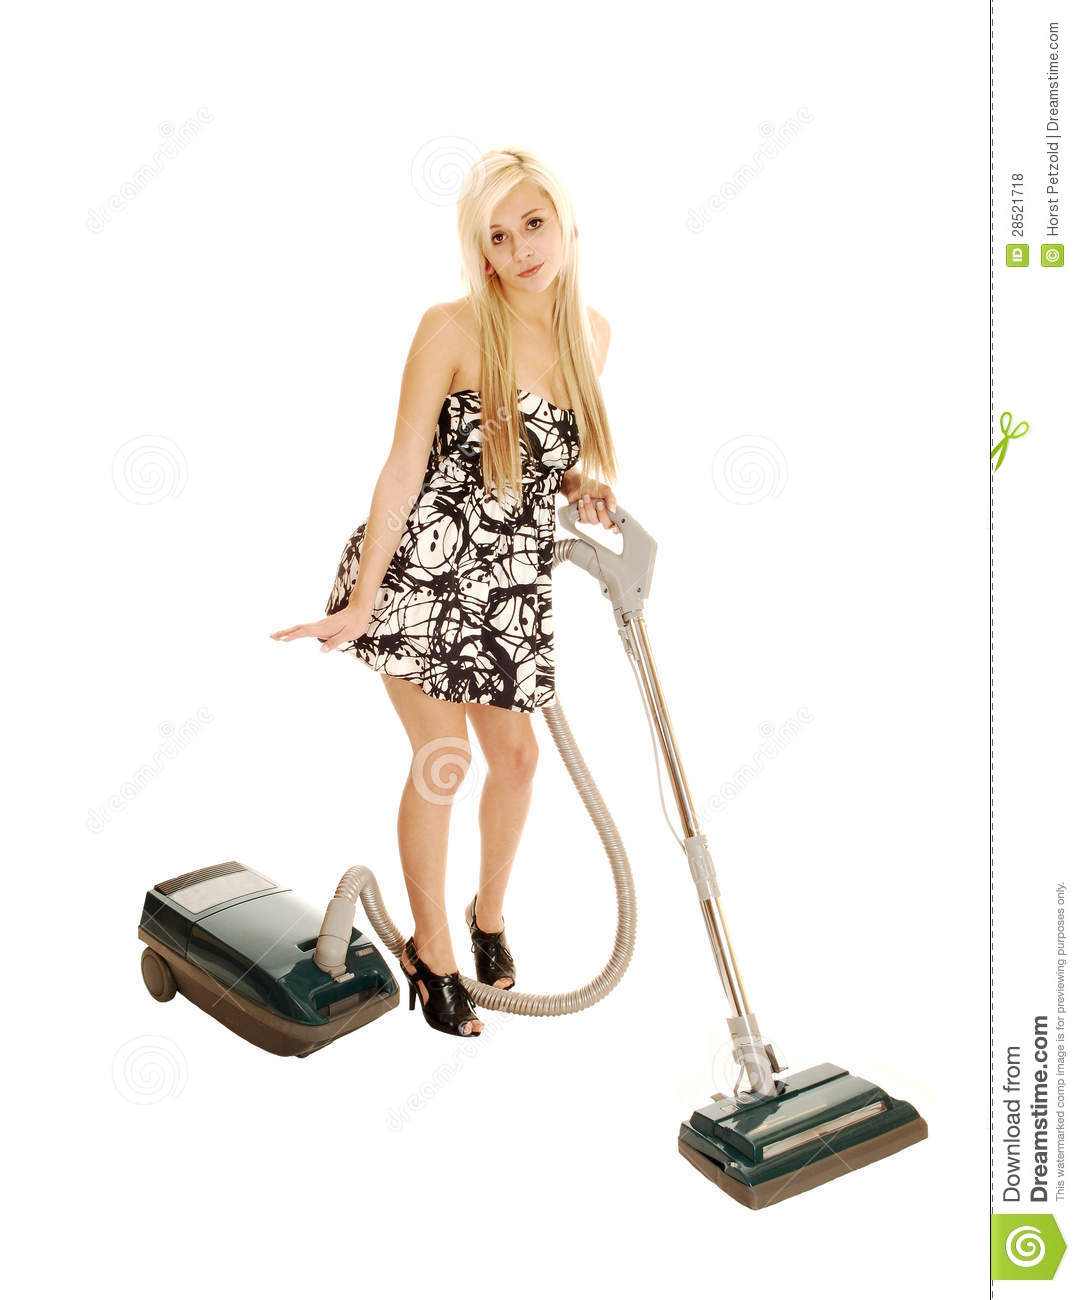 Girl With Vacuum. Stock Photo. Image Of Housework, Device